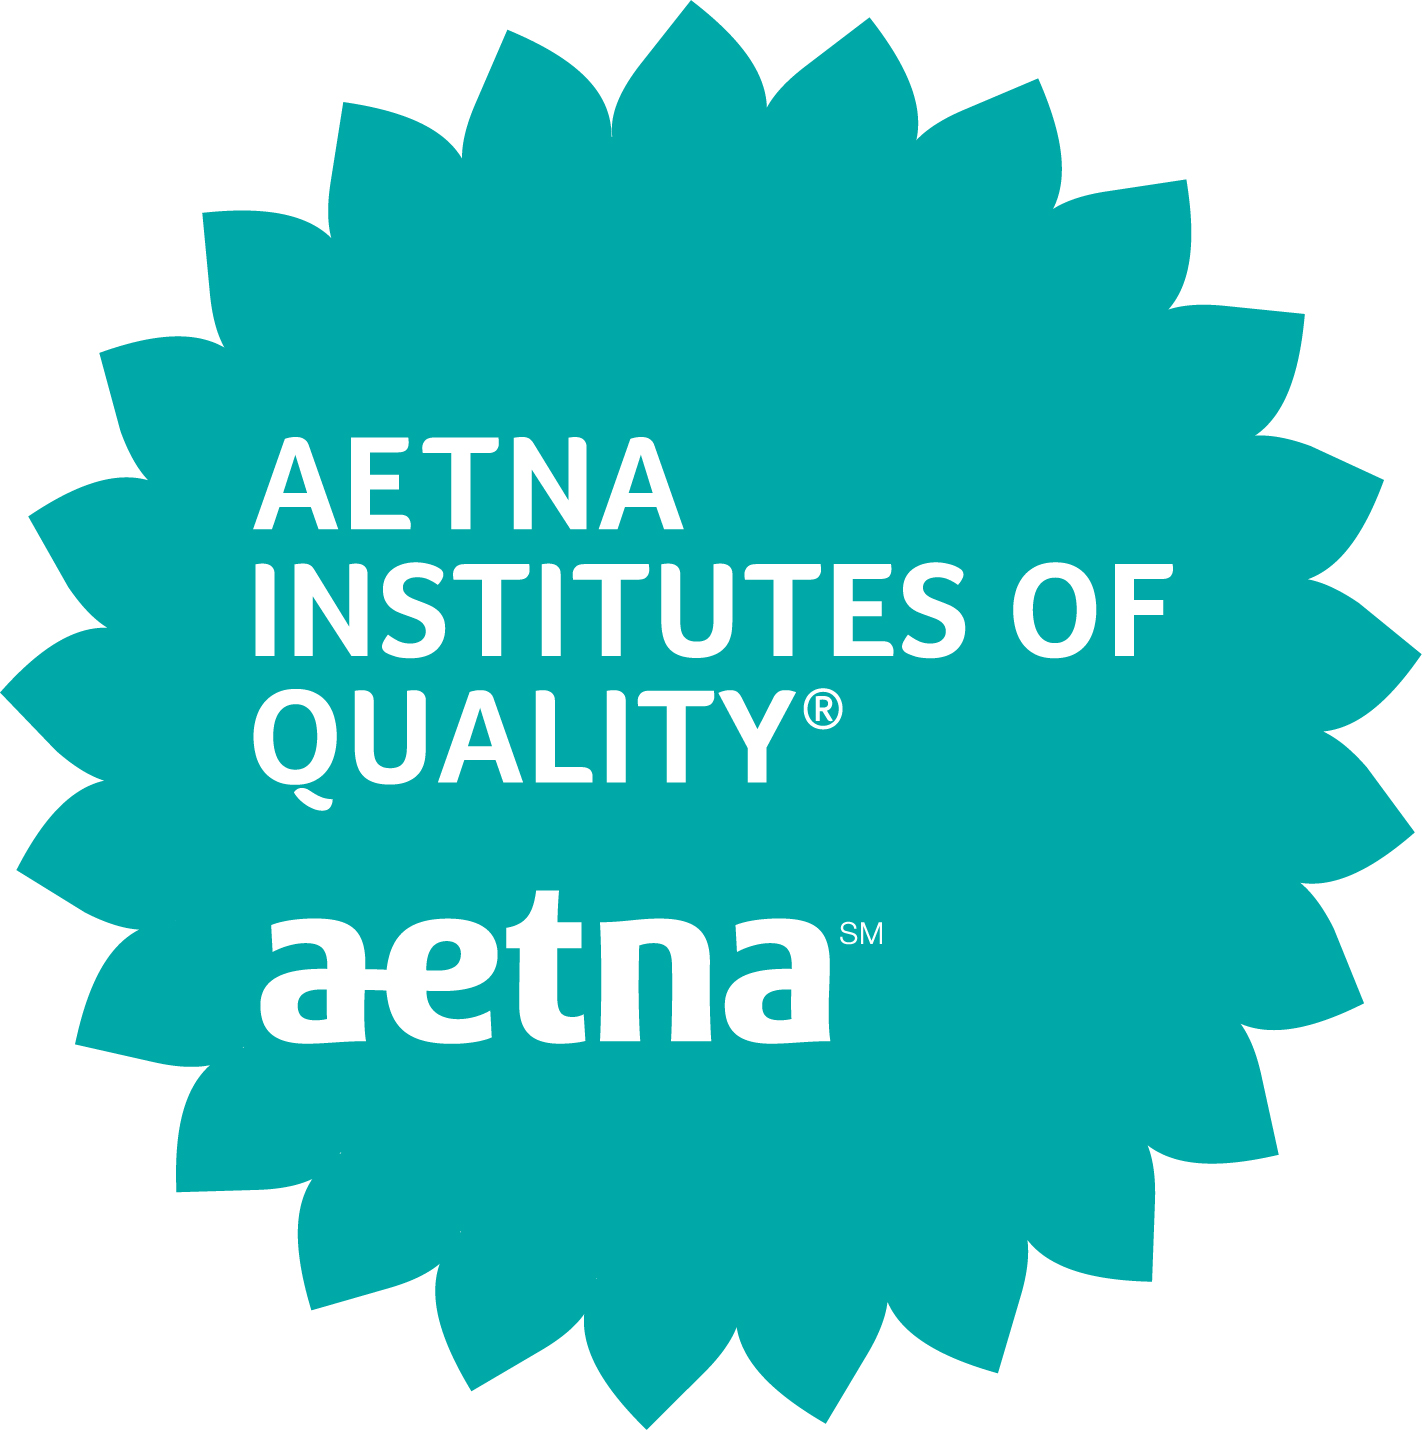 Aetna Institute of Quality